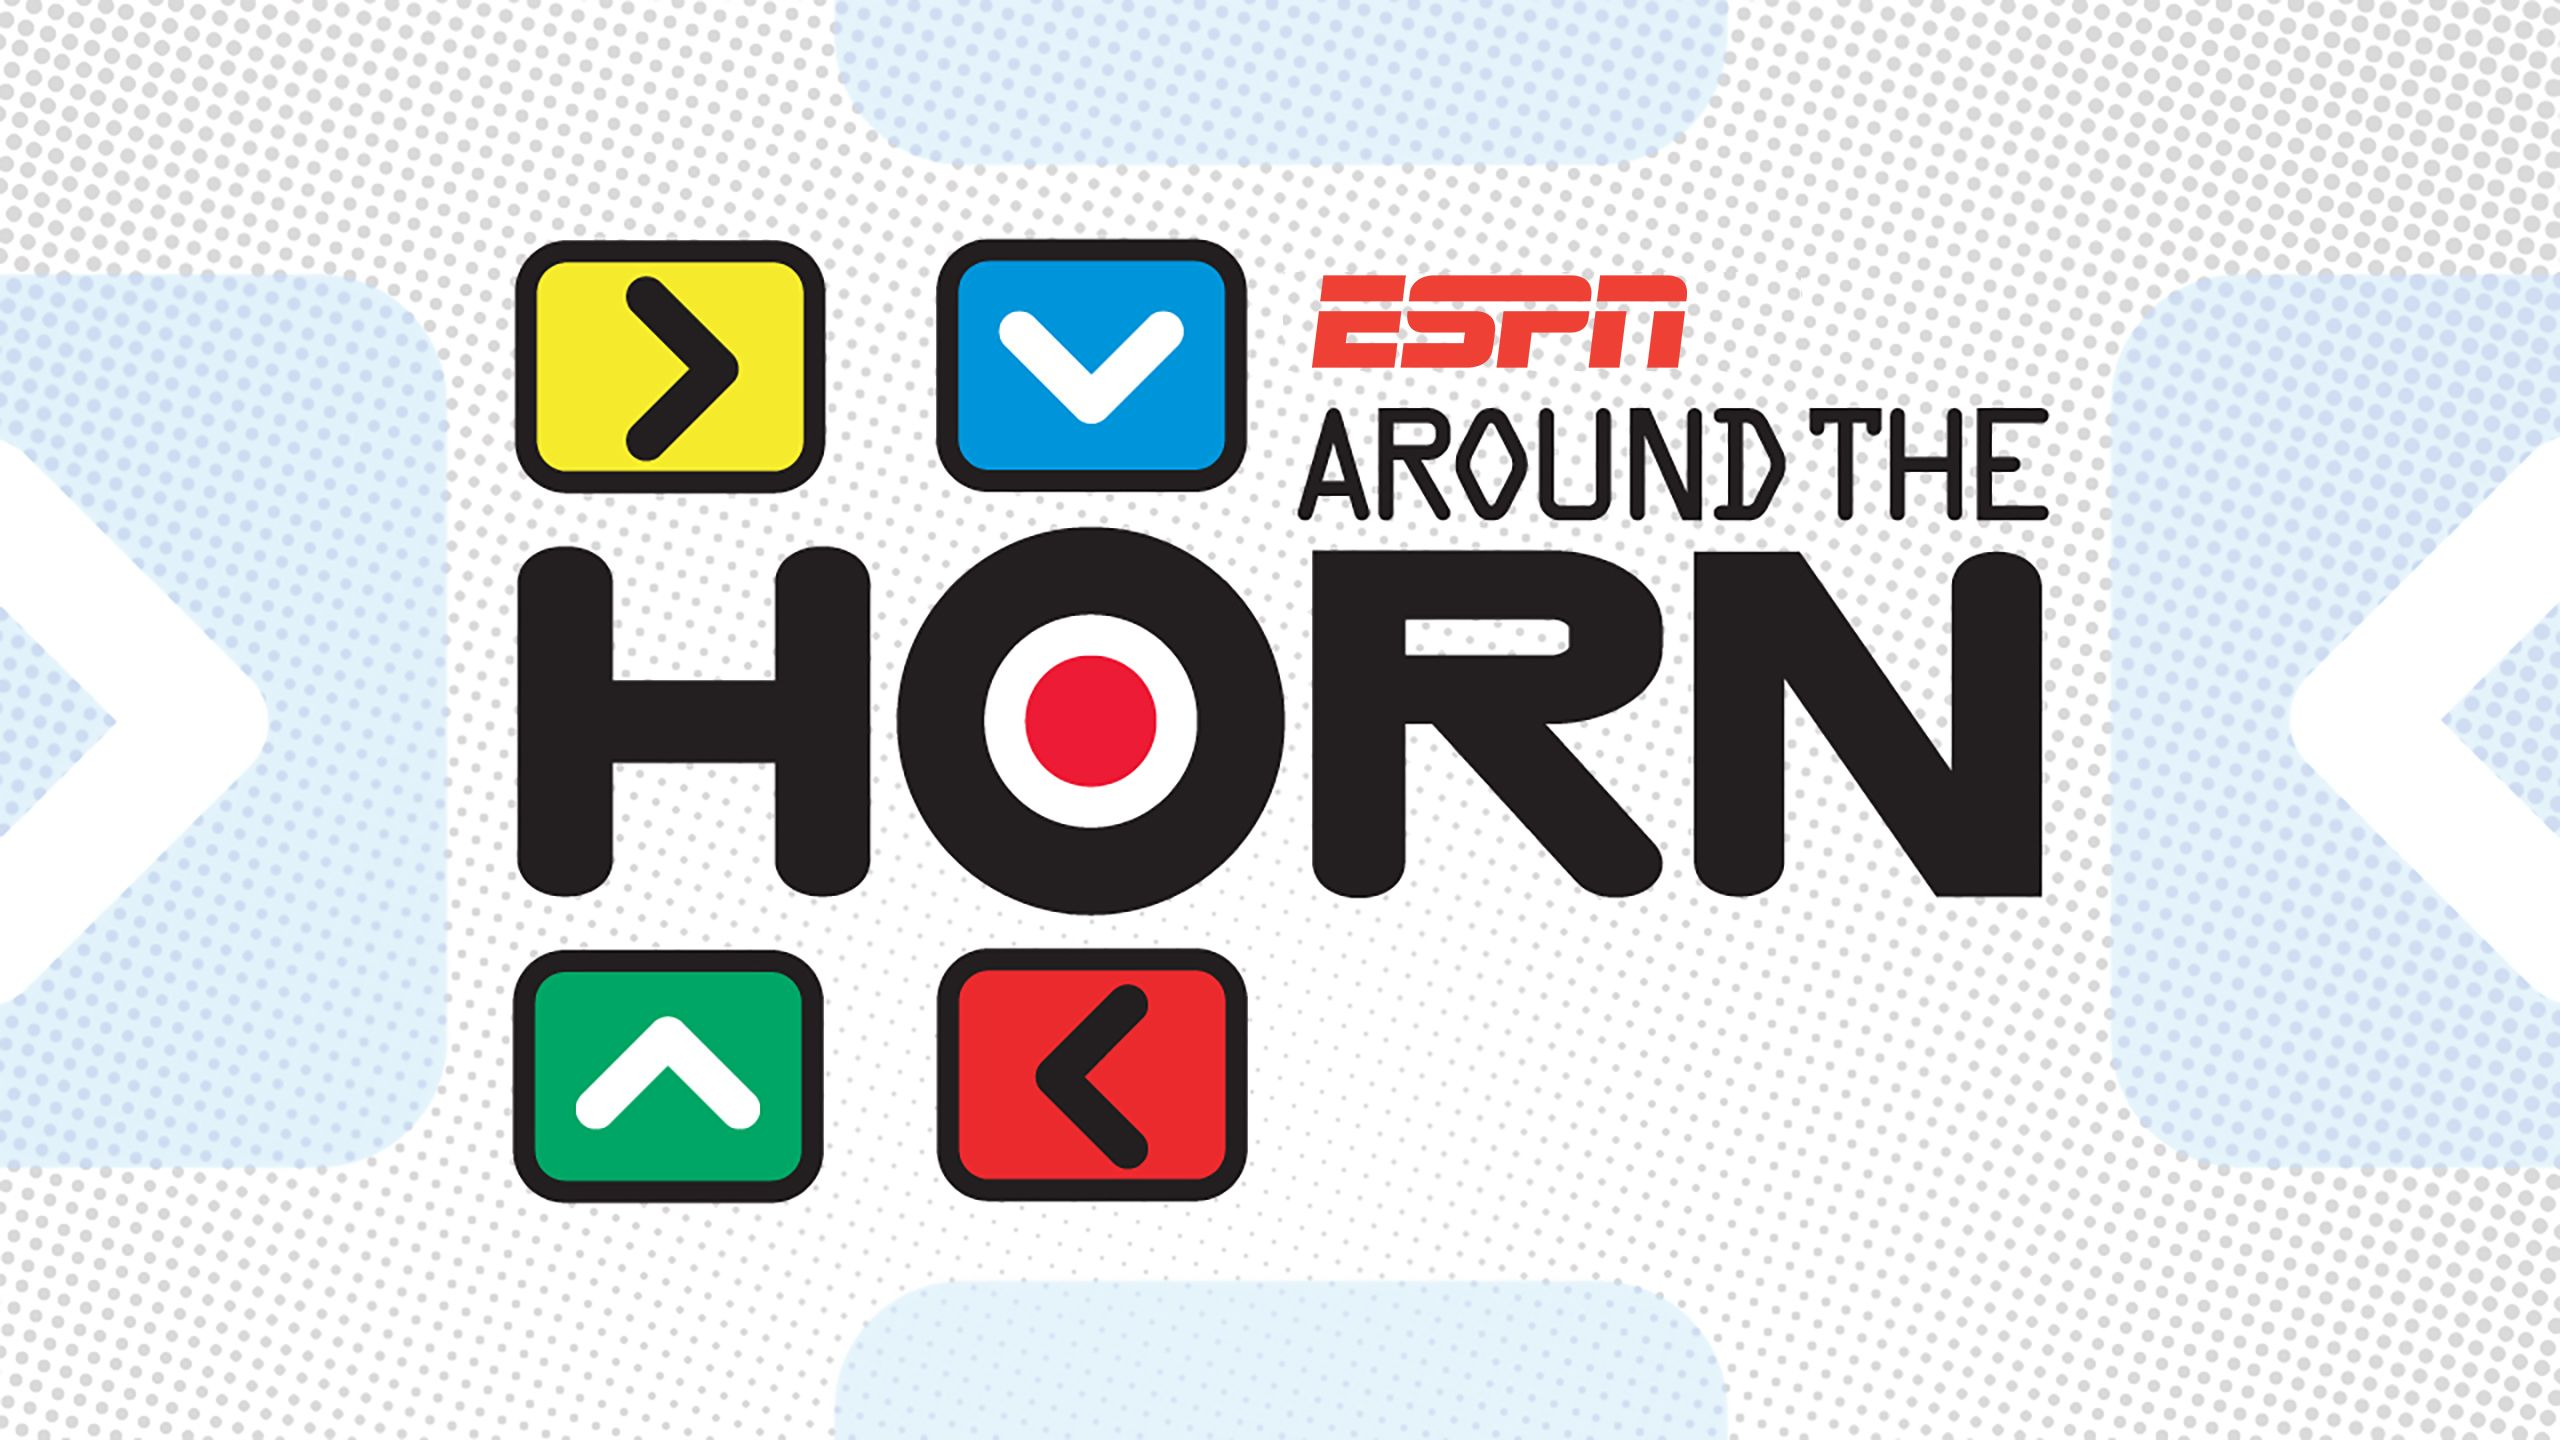 Tue, 12/12 - Around The Horn